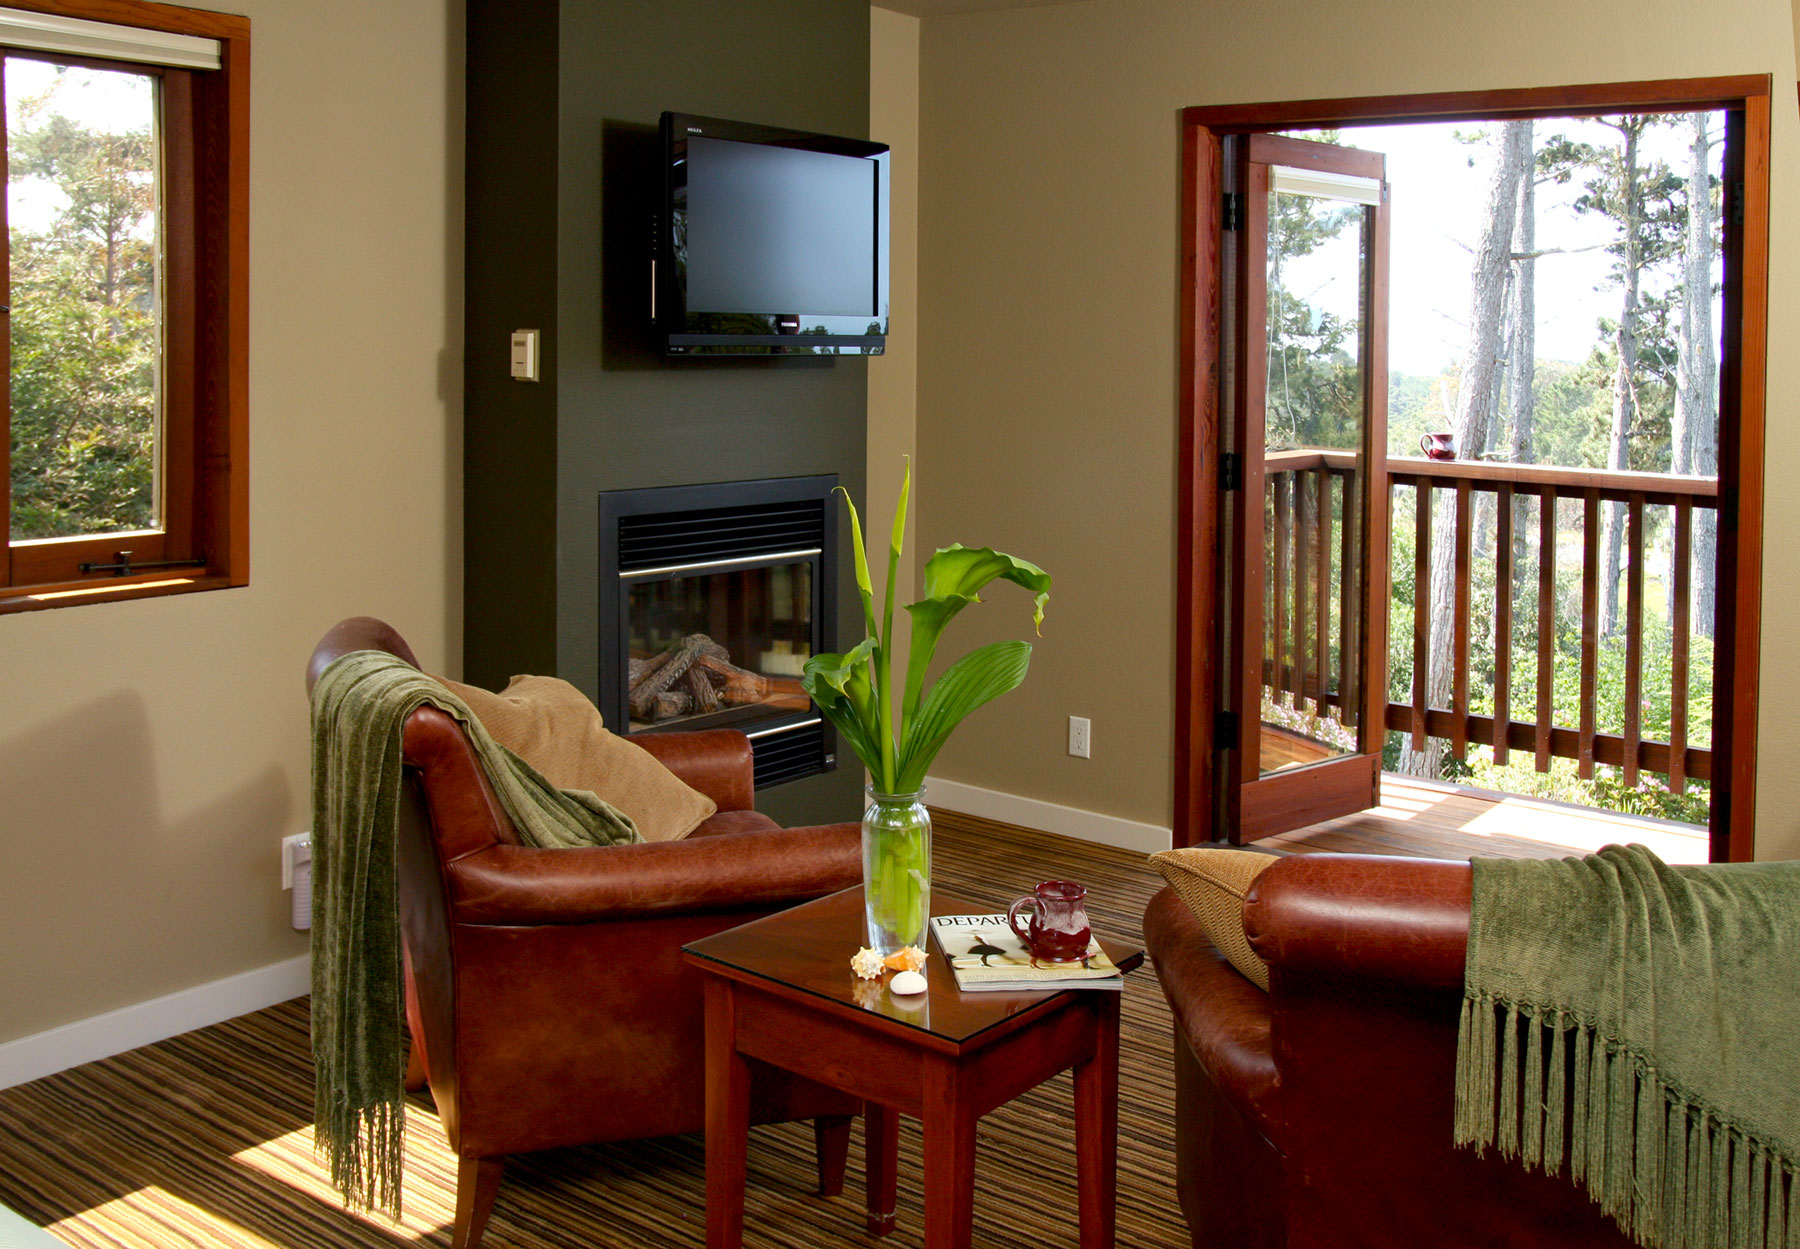 French doors open to the balcony with second floor view in the Osprey room